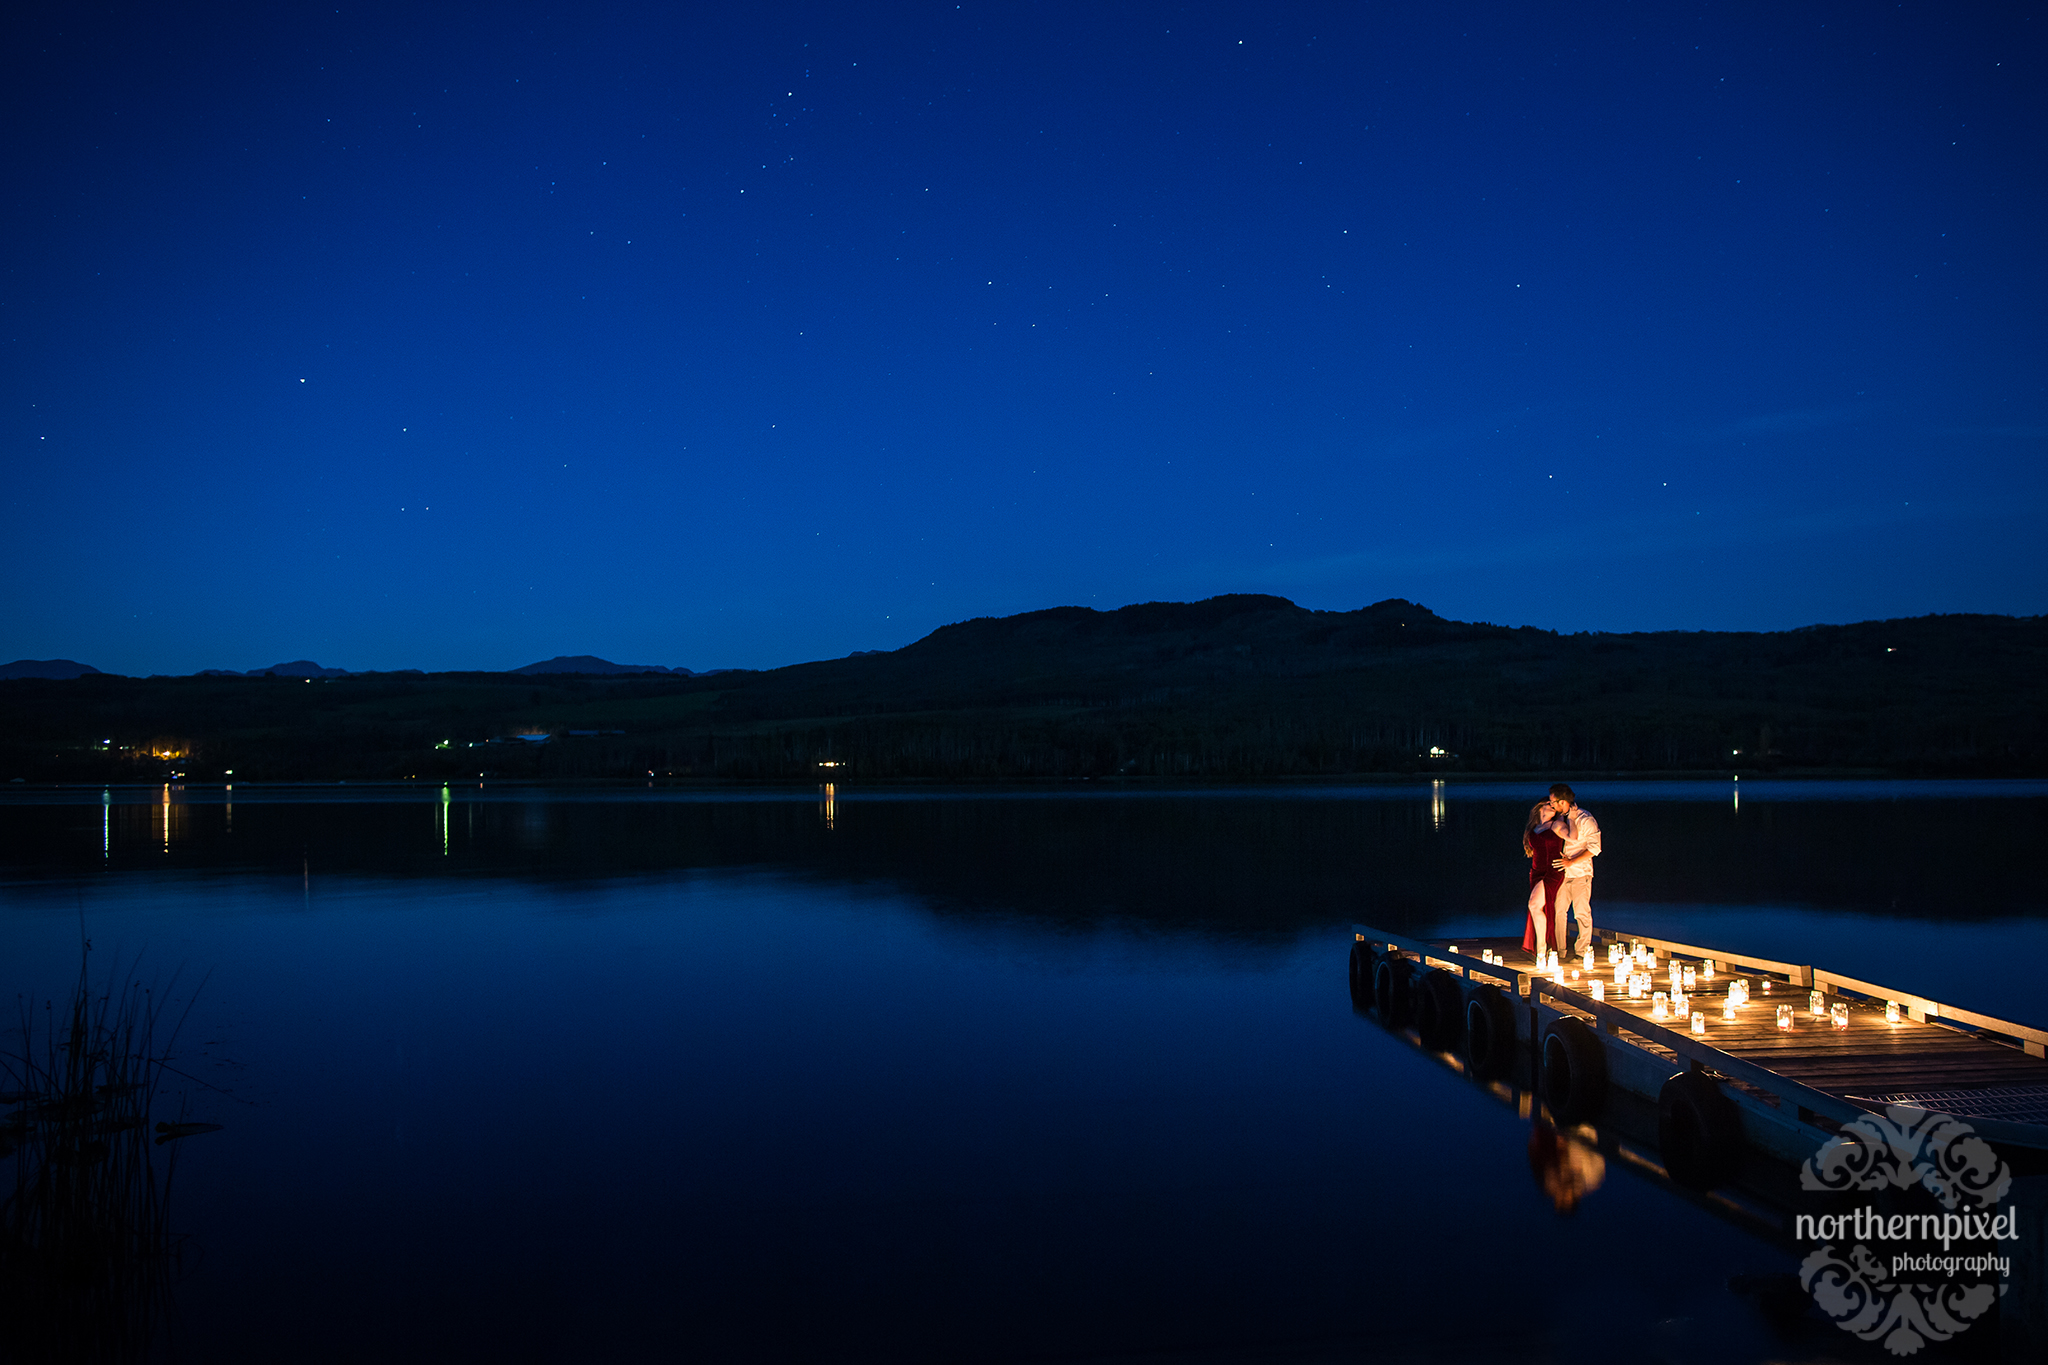 Night Photography at Tyhee Lake Smithers BC